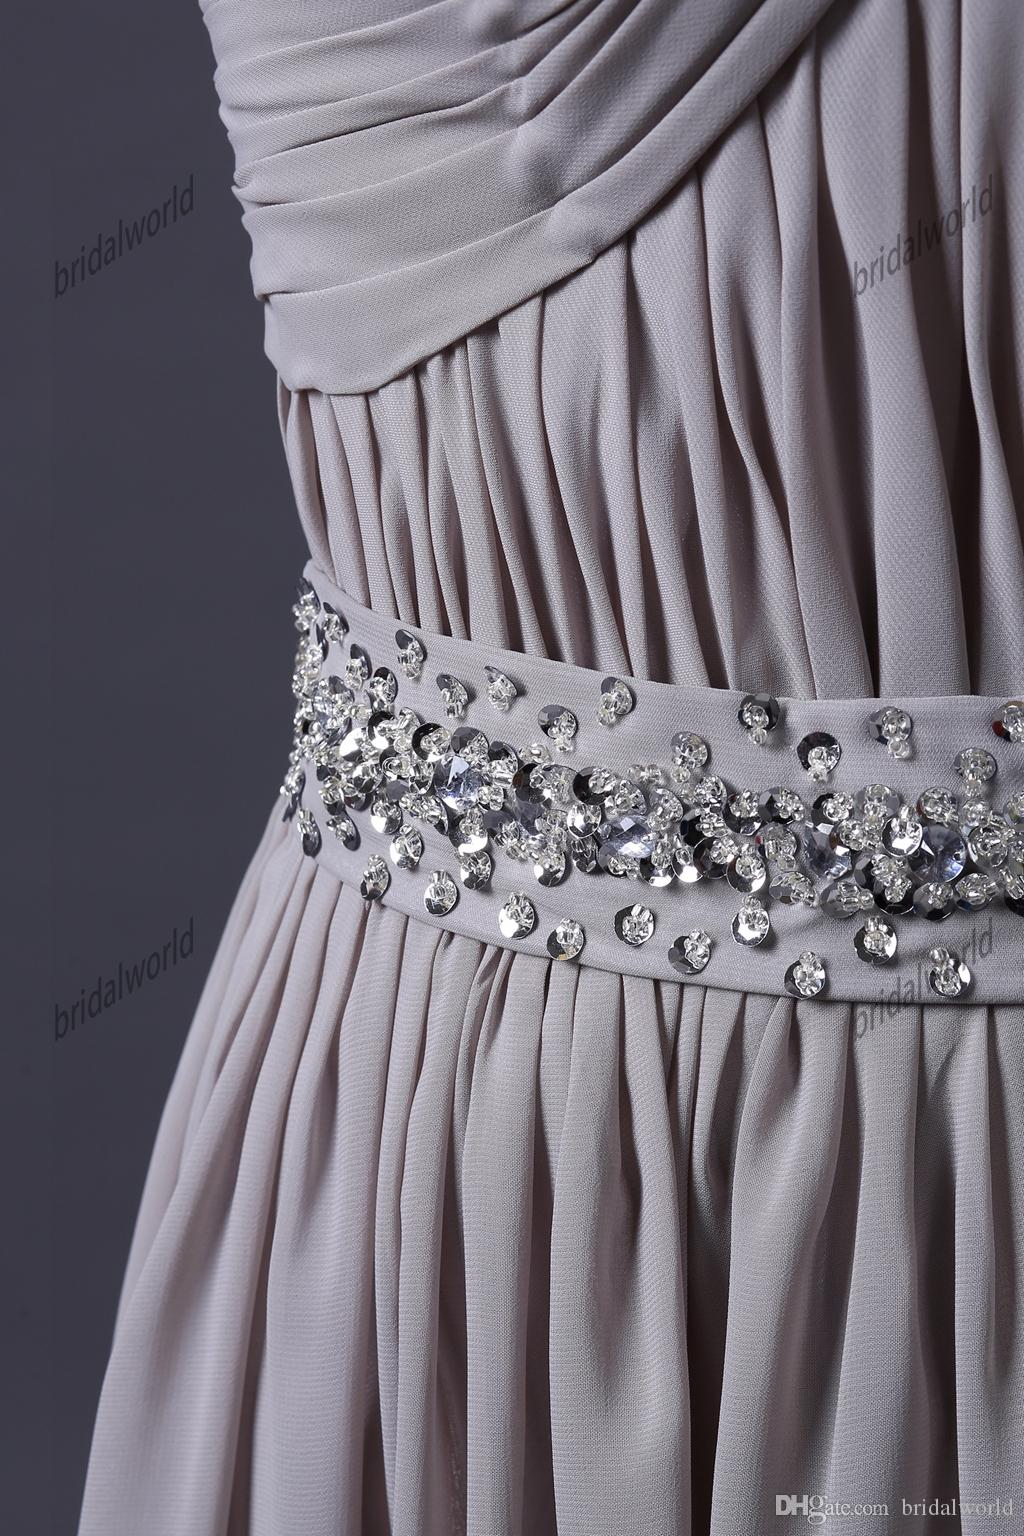 Dresses for Mother of the Bride Gray Floor Length Evening Gowns Strapless Chiffon A-line Beaded Waist Mother of Groom Dresses Custom Made